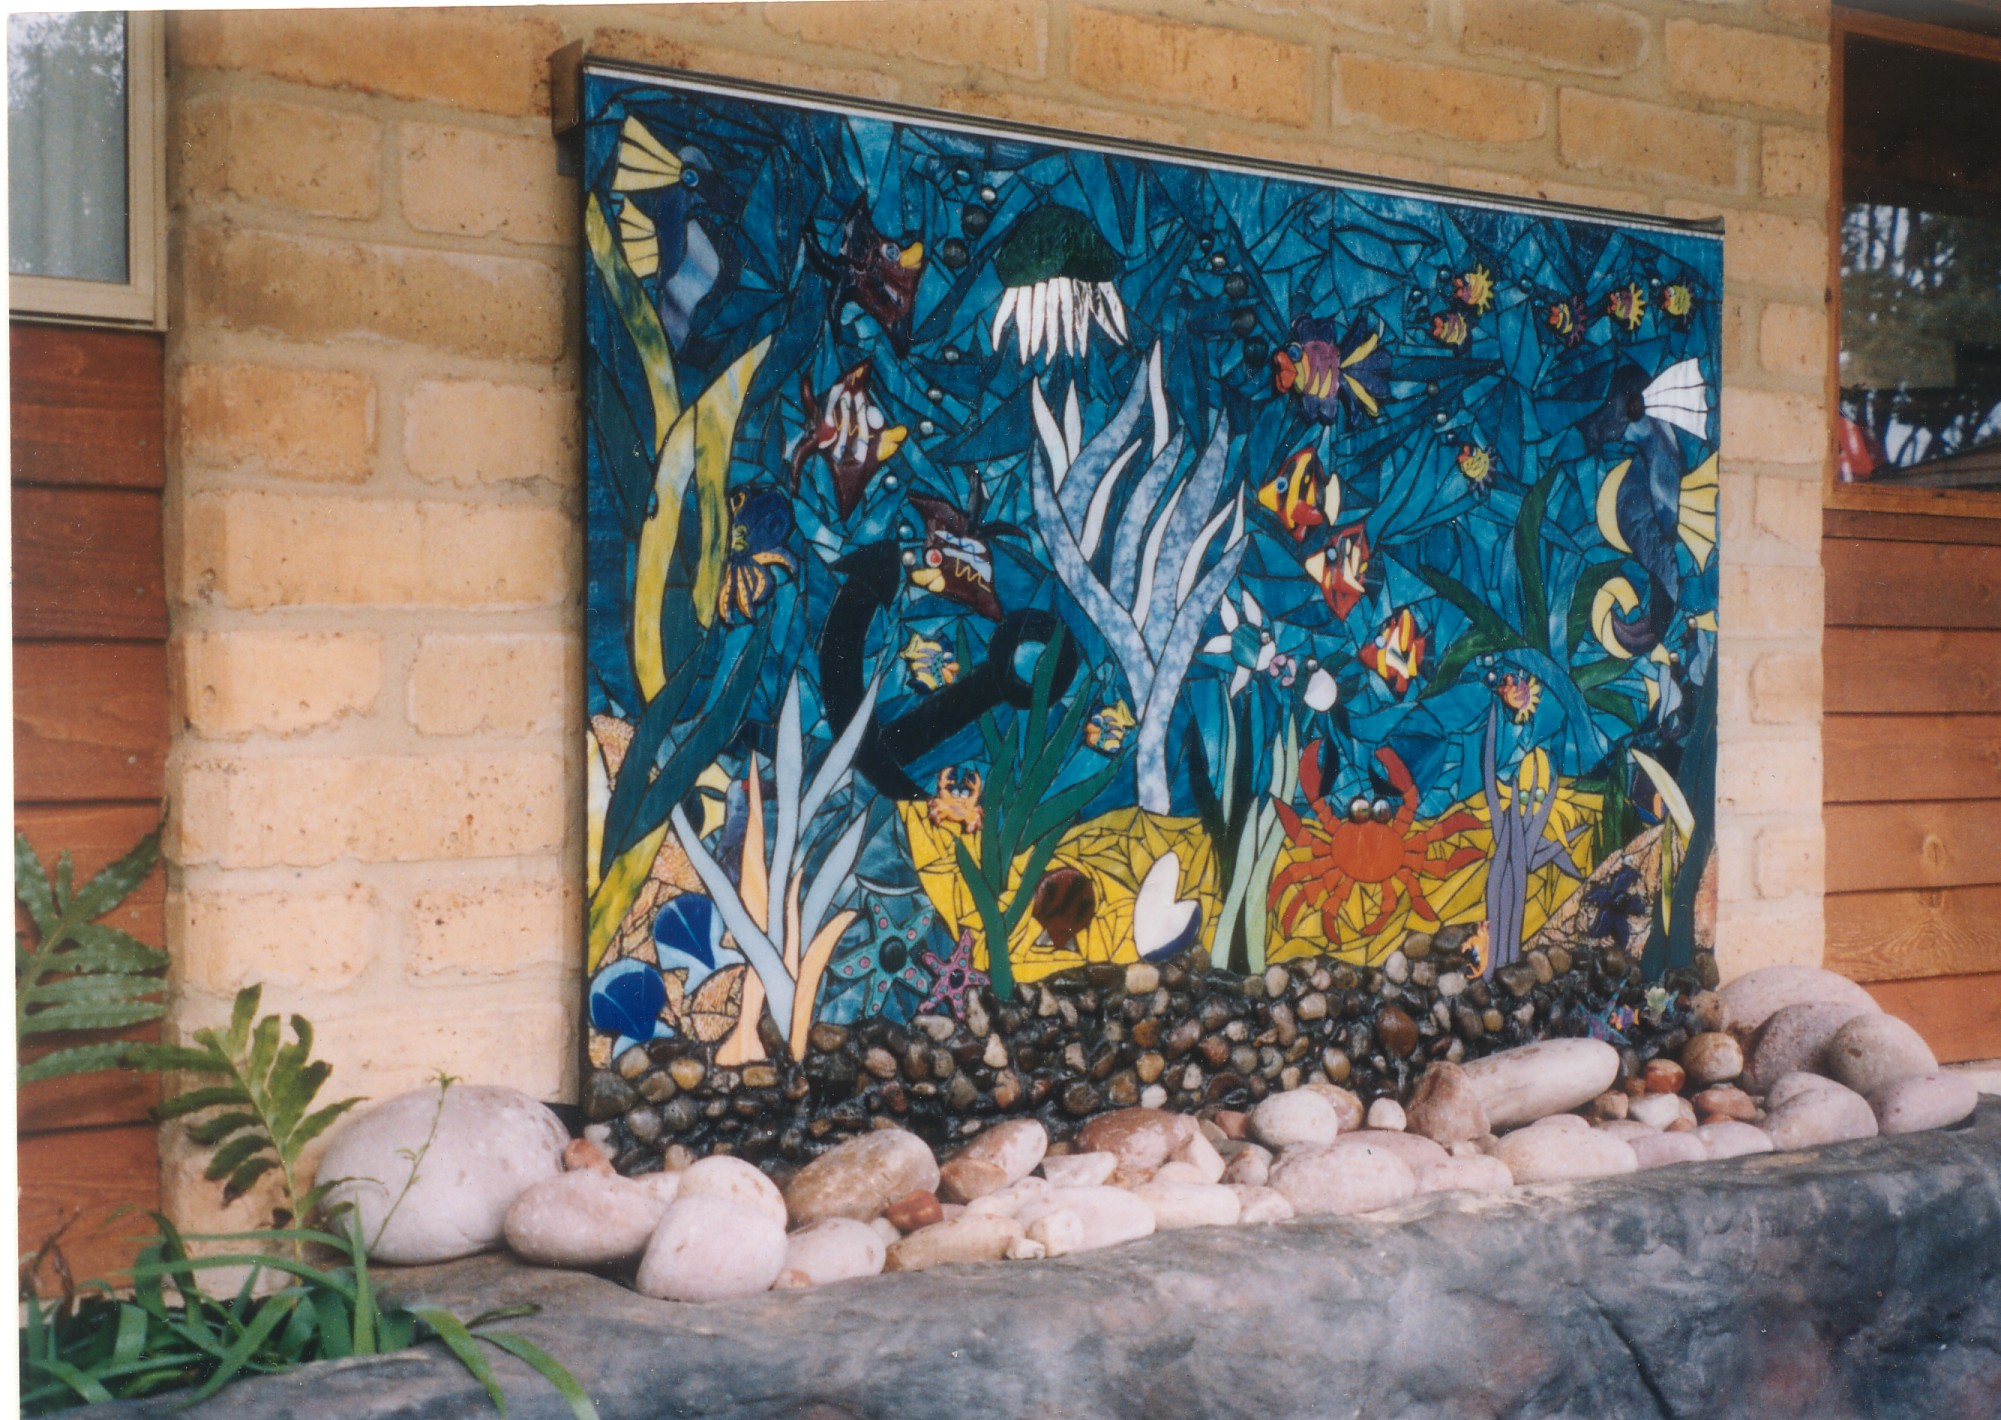 Mosaic Water Feature architectural designs - CINDY POOLE : GLASS ARTIST